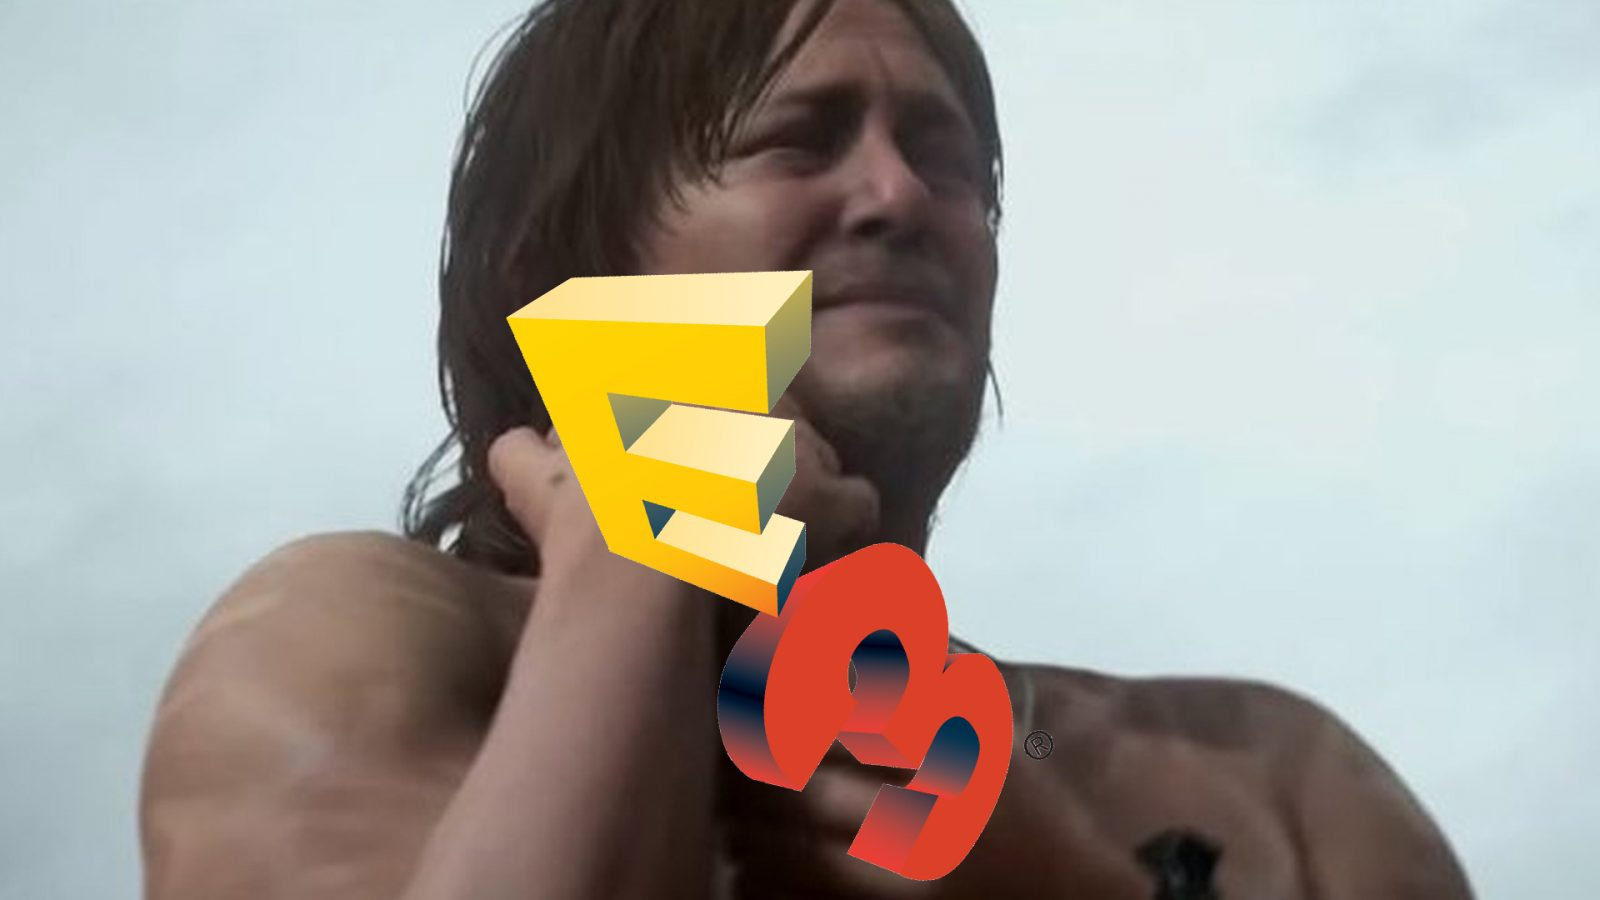 E3 takes one other blow as Sony confirms it's skipping once more